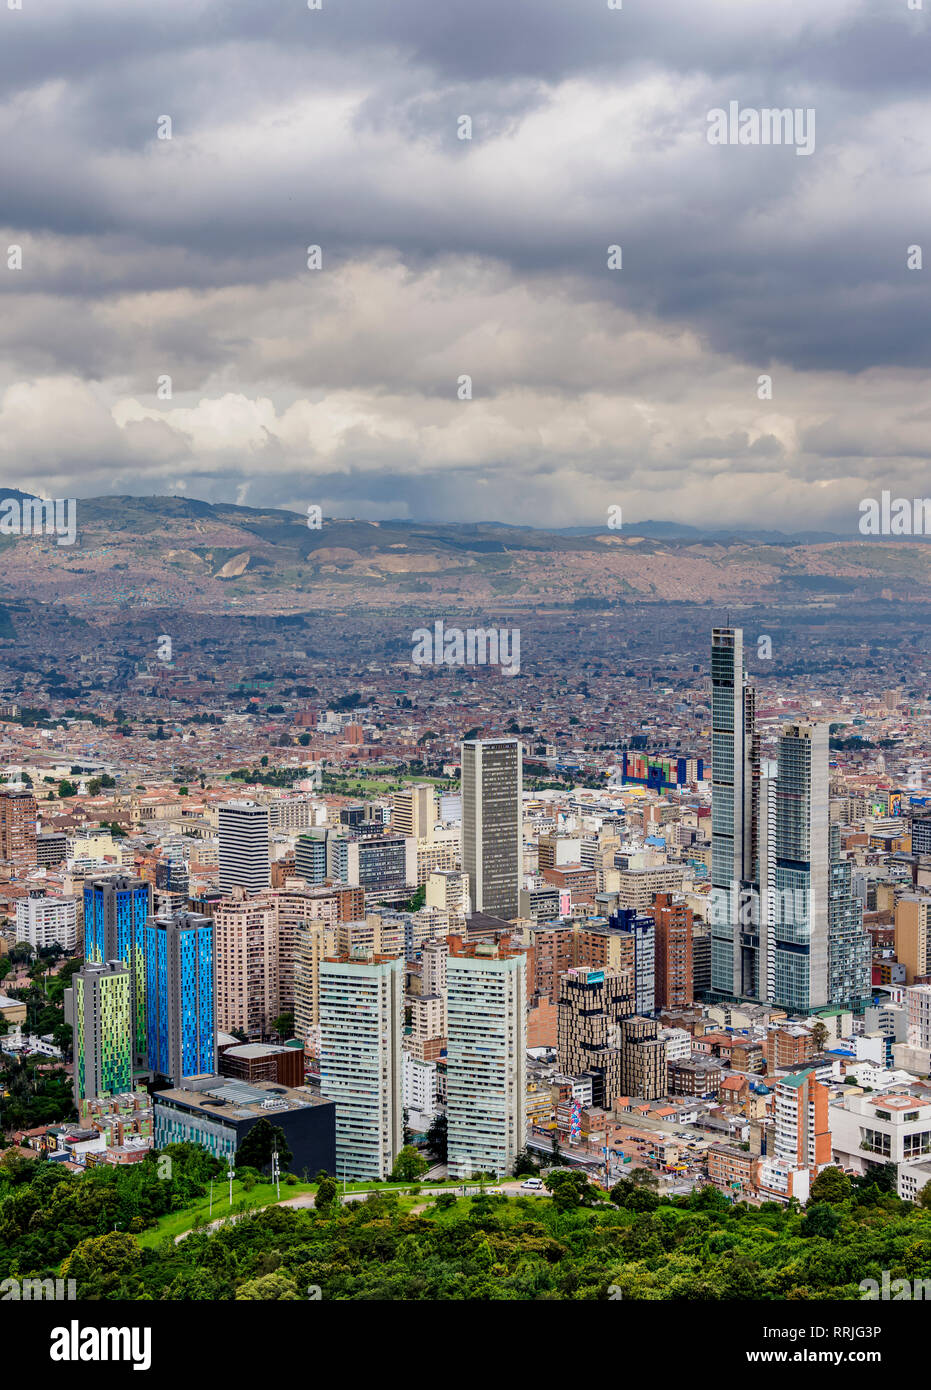 Edifici alti visto da Mount Monserrate, Bogotà, Distretto Capitale, Colombia, Sud America Foto Stock